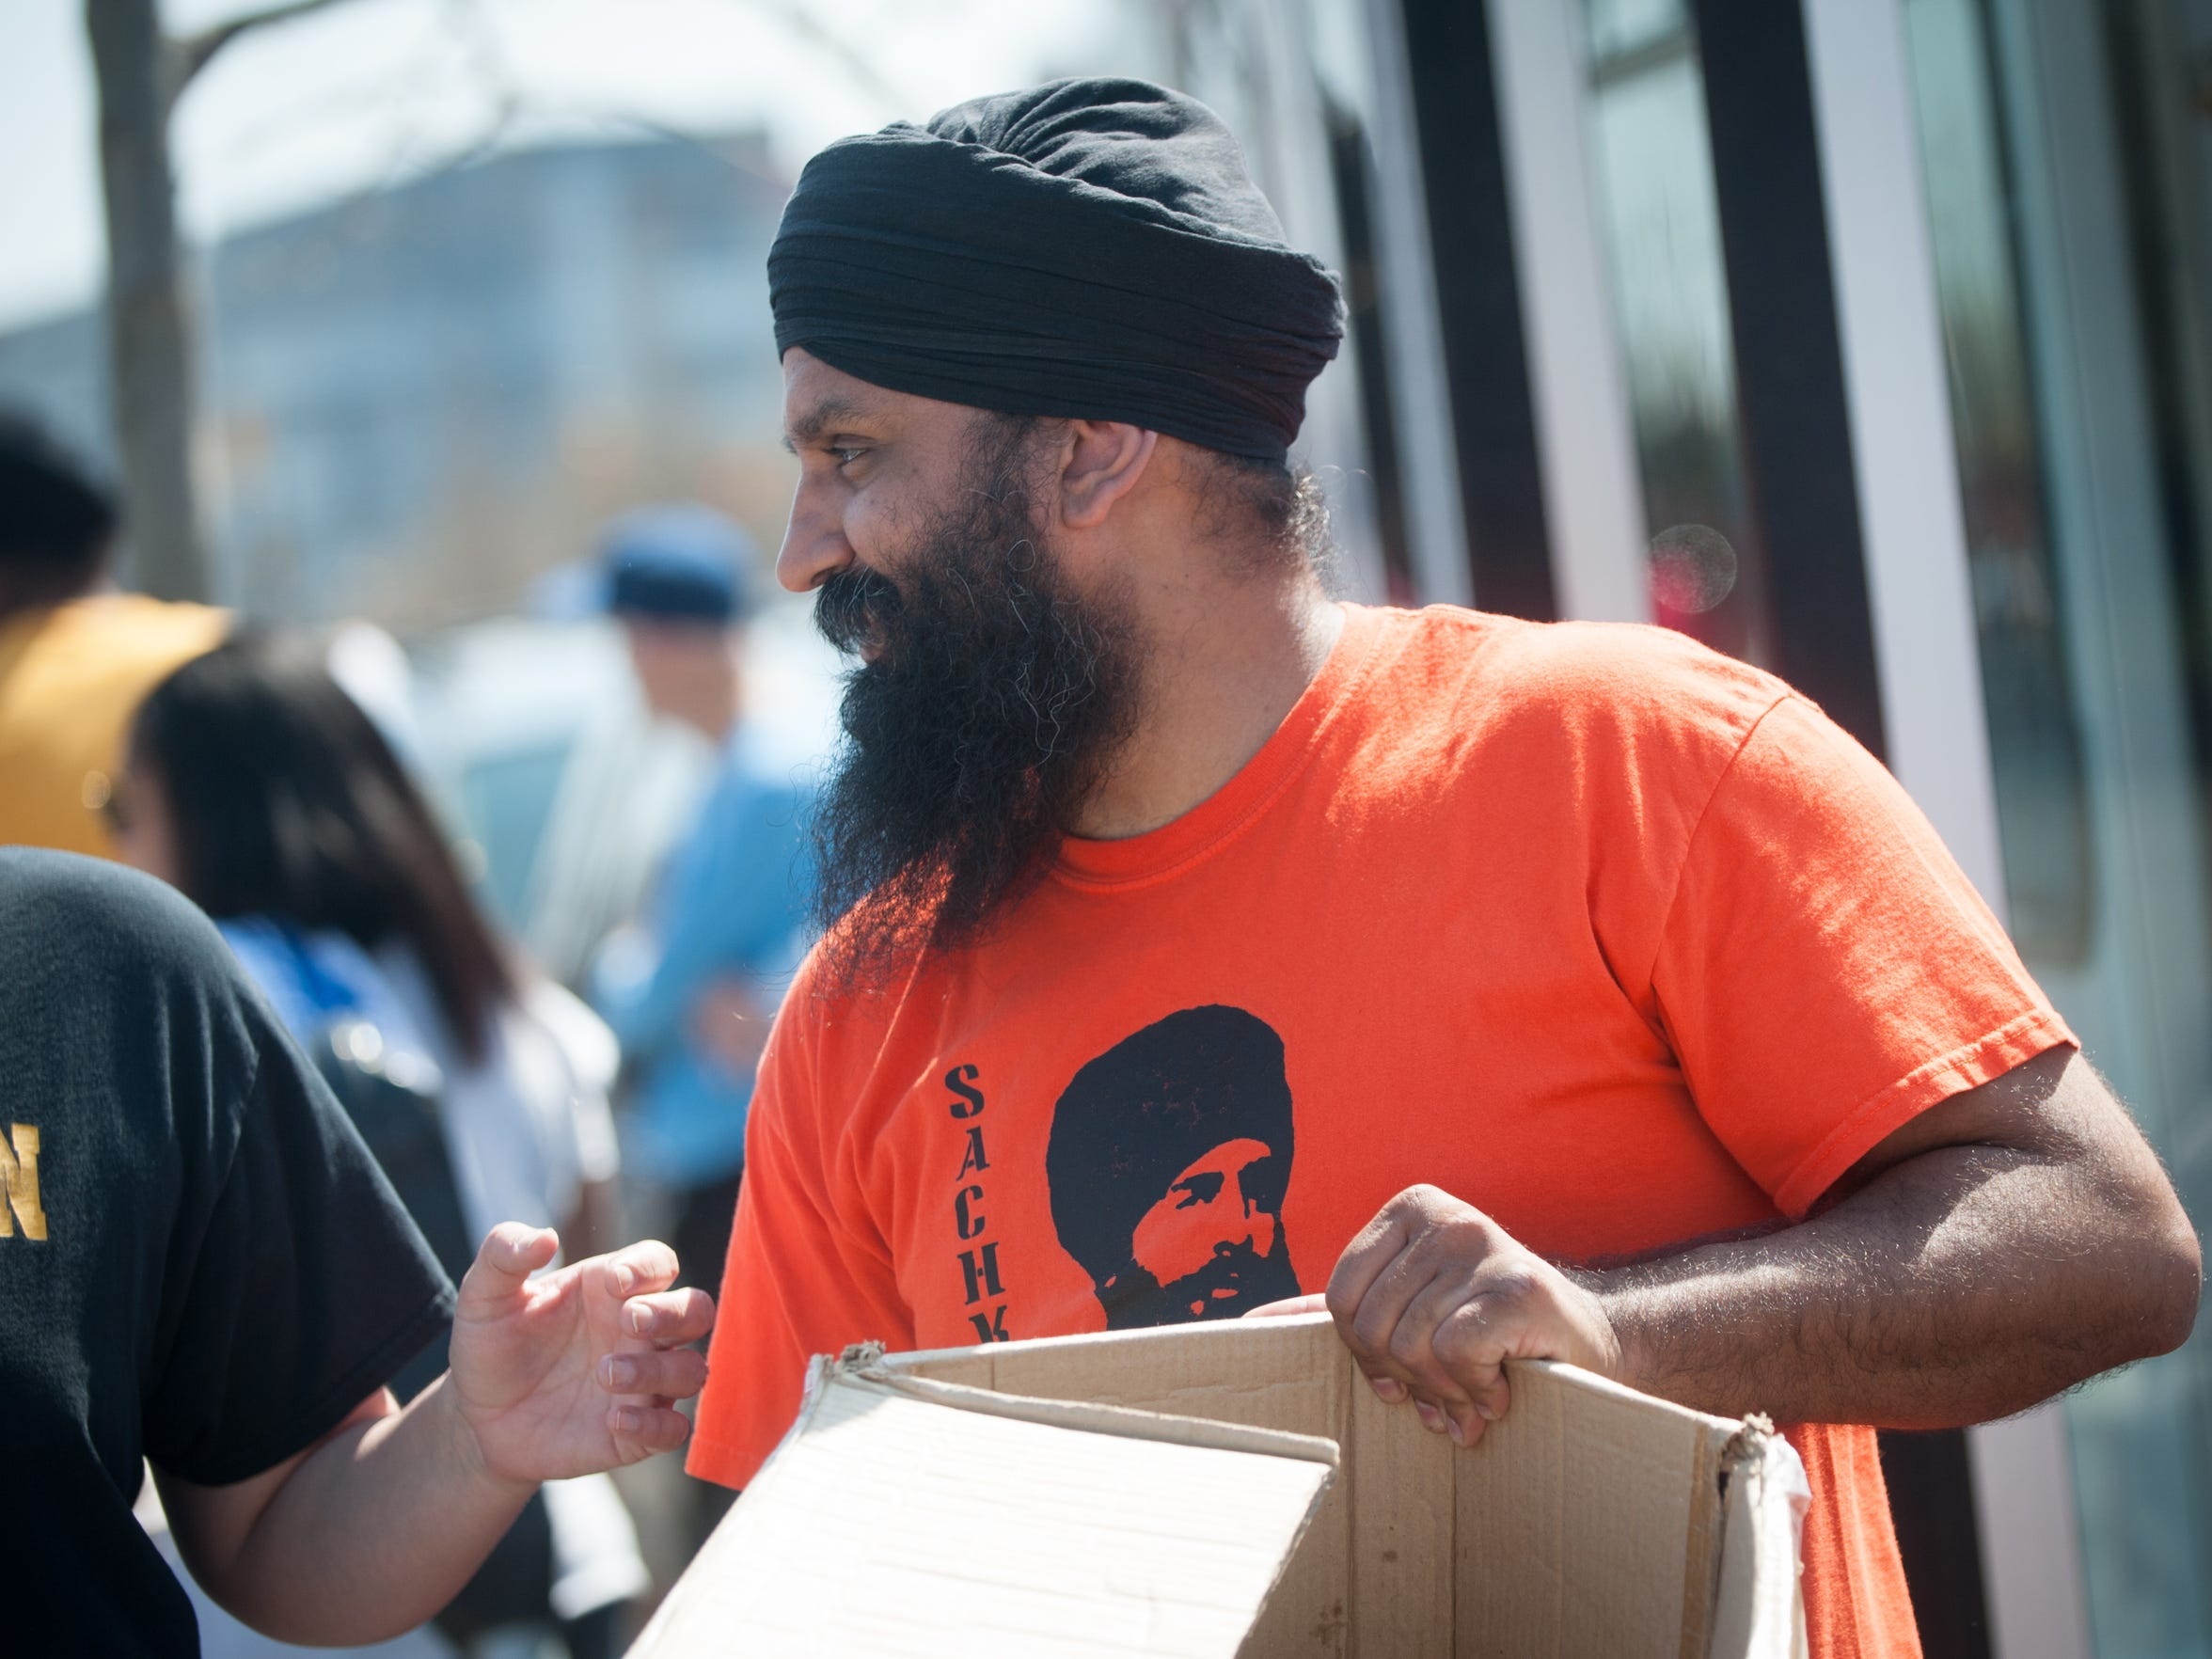 Tony Rahil chats with volunteers as they distribute food to passersby on Martin Luther King Blvd. in Camden, N.J. on Saturday, April 14, 2018. Volunteers from the Sikh Coalition come from throughout Pennsylvania and New Jersey to distribute food and clothing at this location every month.